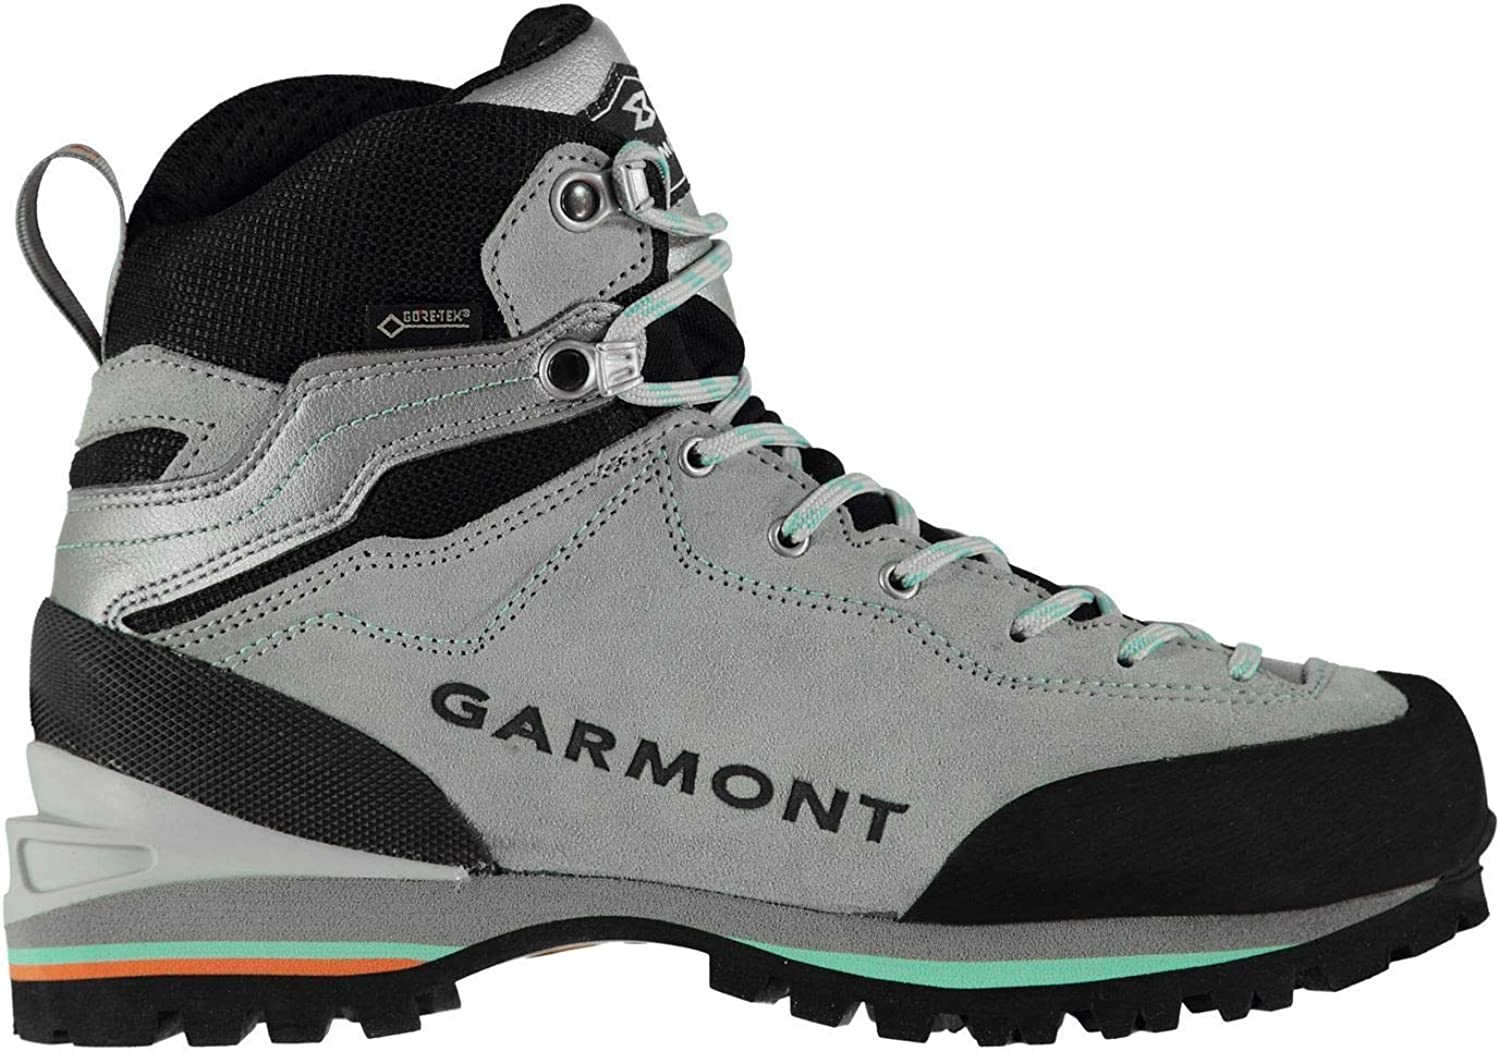 Garmont Ascent GTX Walking Boots Womens Grey Hiking Trekking shoes Footwear